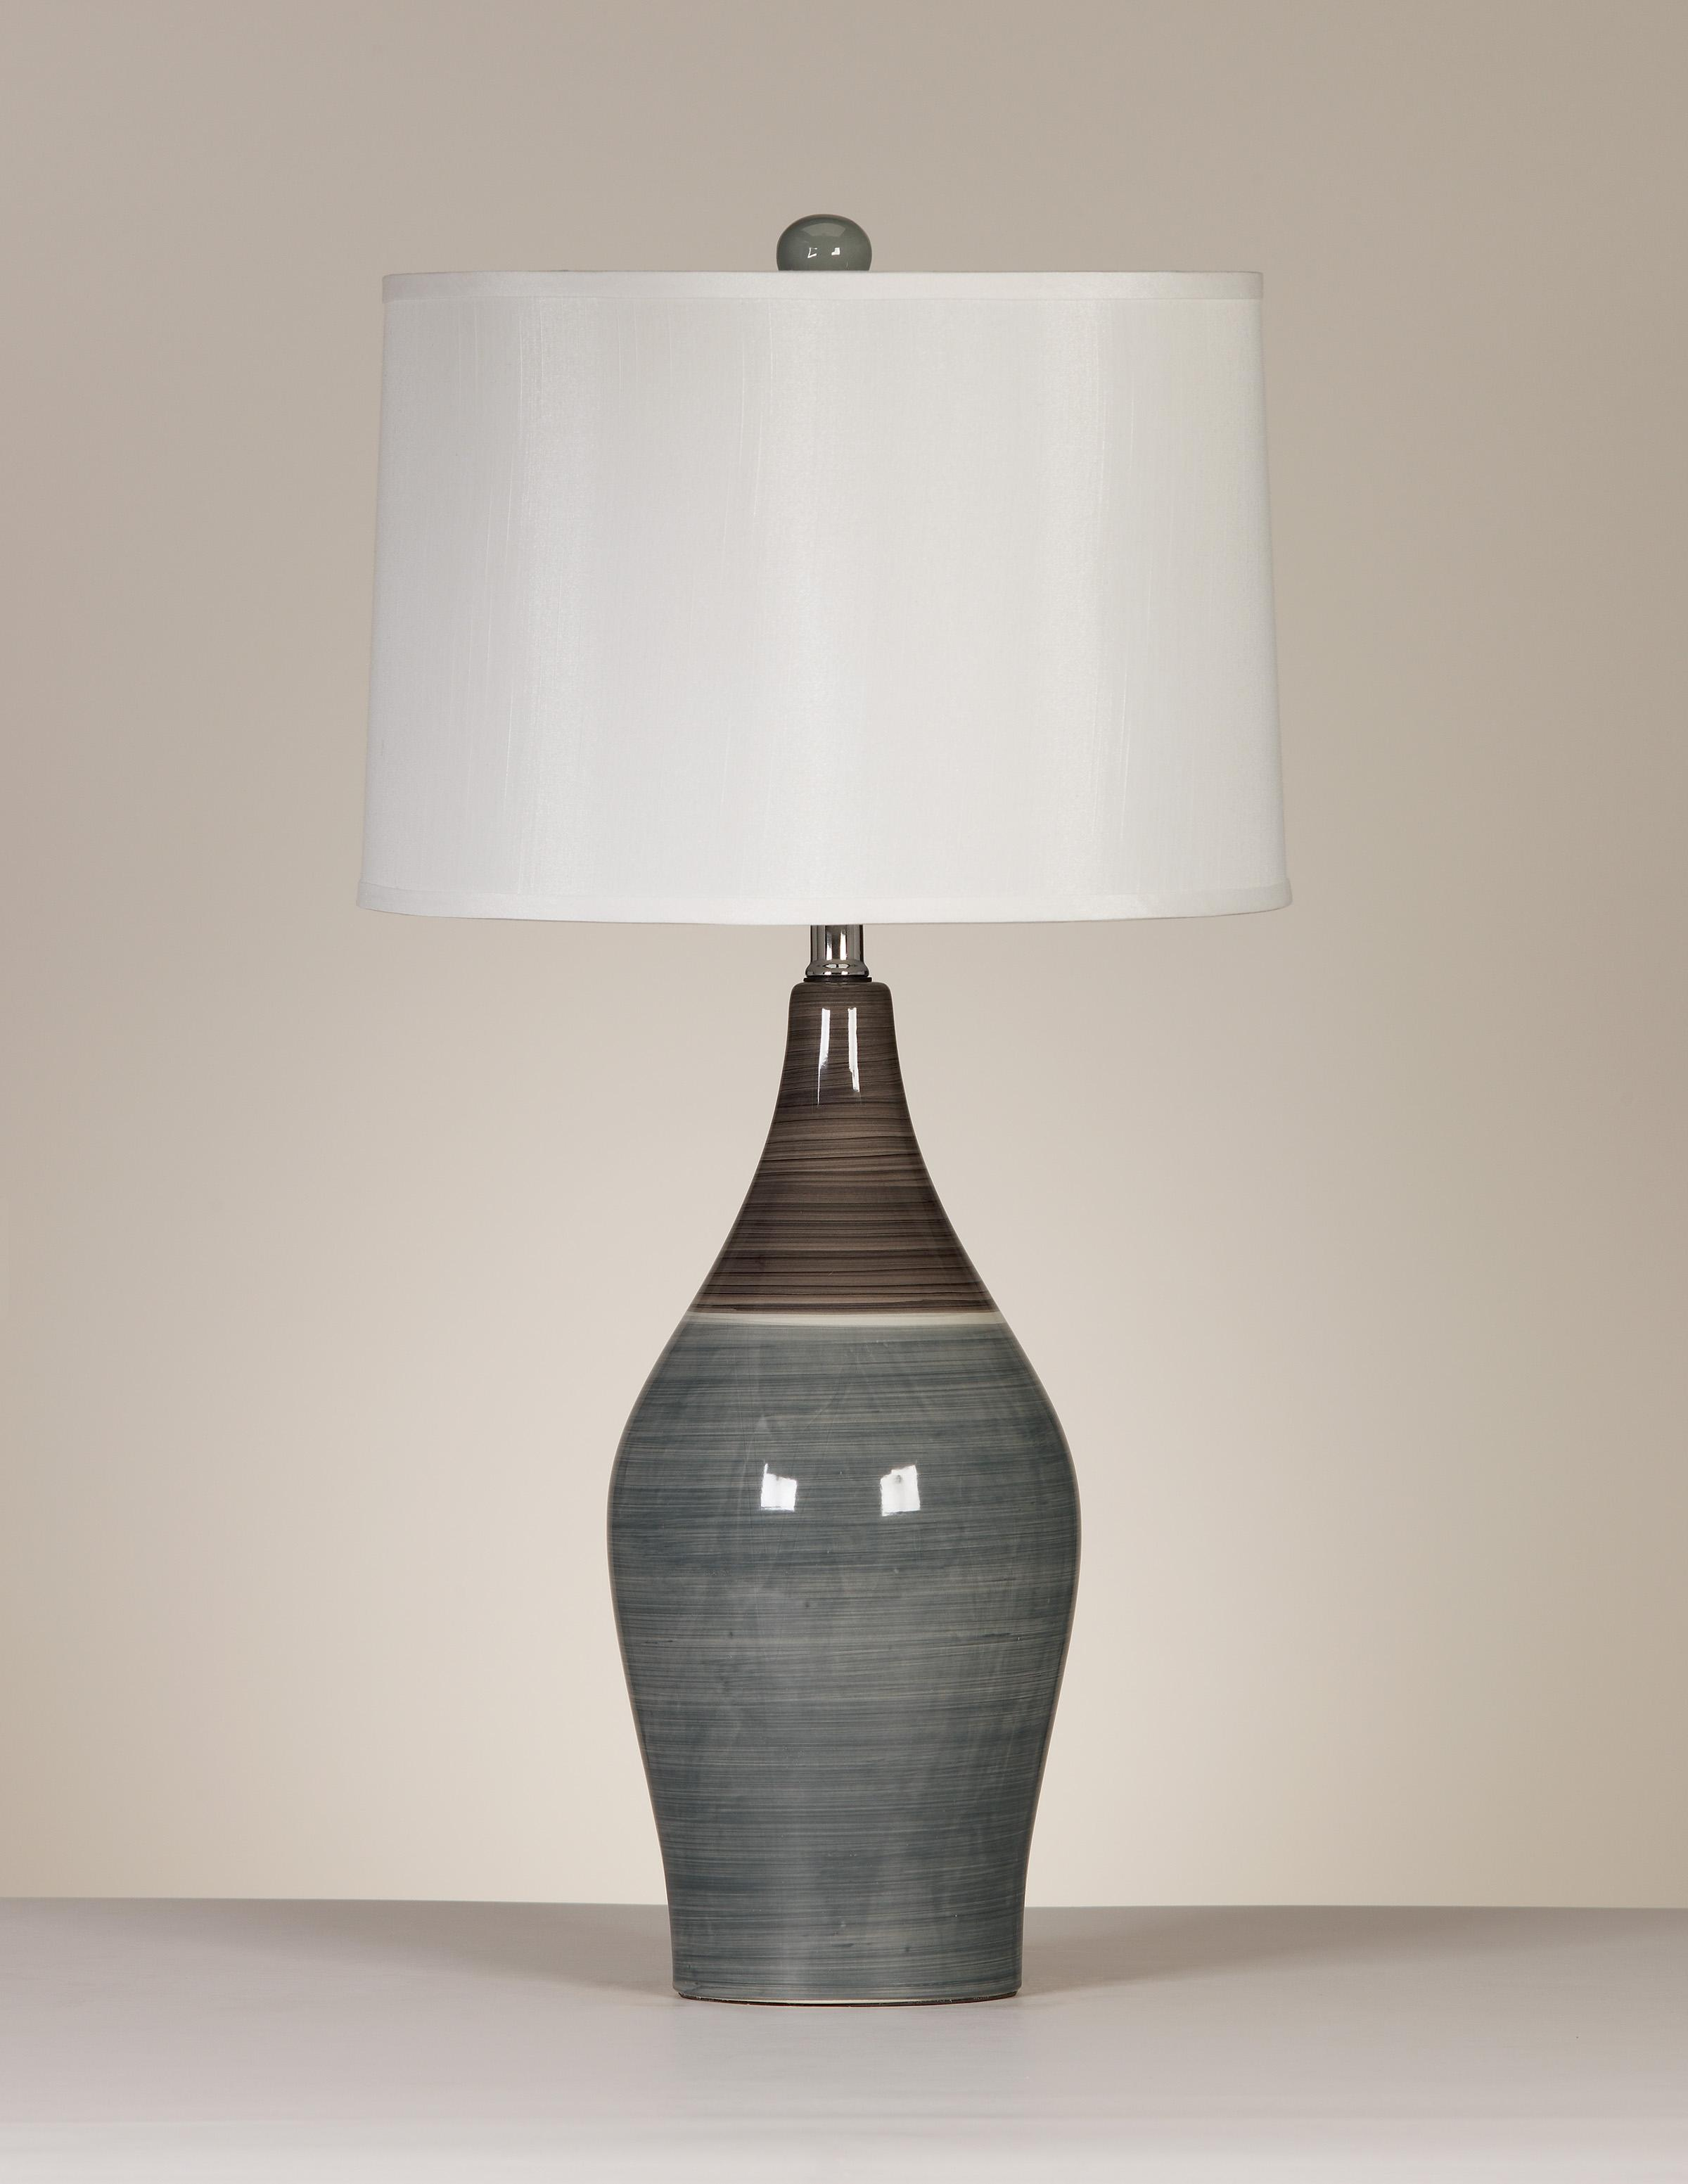 Signature Design by Ashley Lamps - Contemporary Set of 2 Niobe Table Lamps - Item Number: L123884